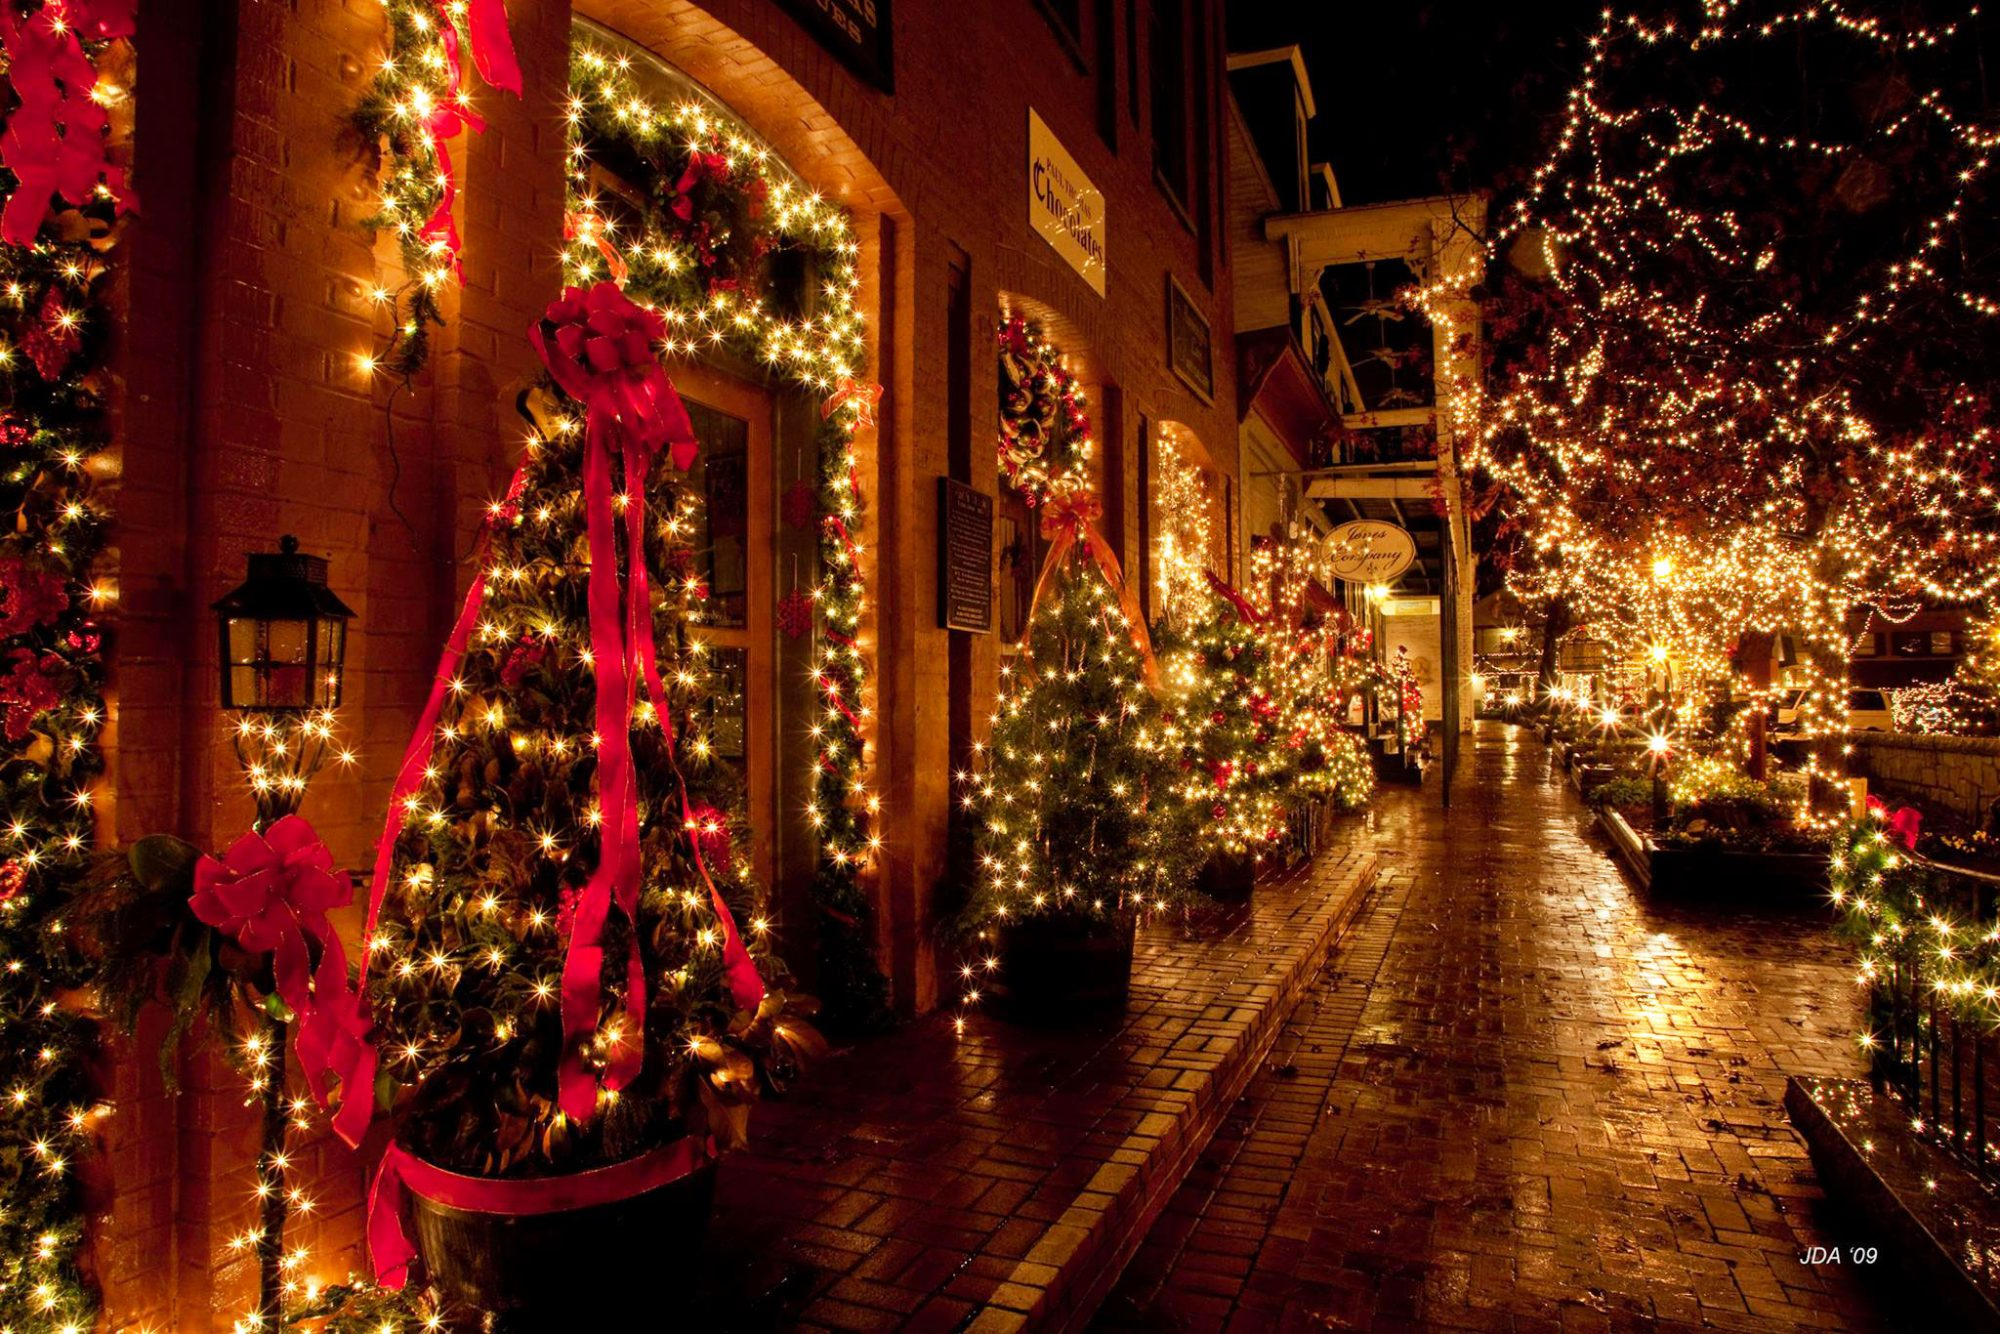 Dahlonega's Old-Fashioned Christmas